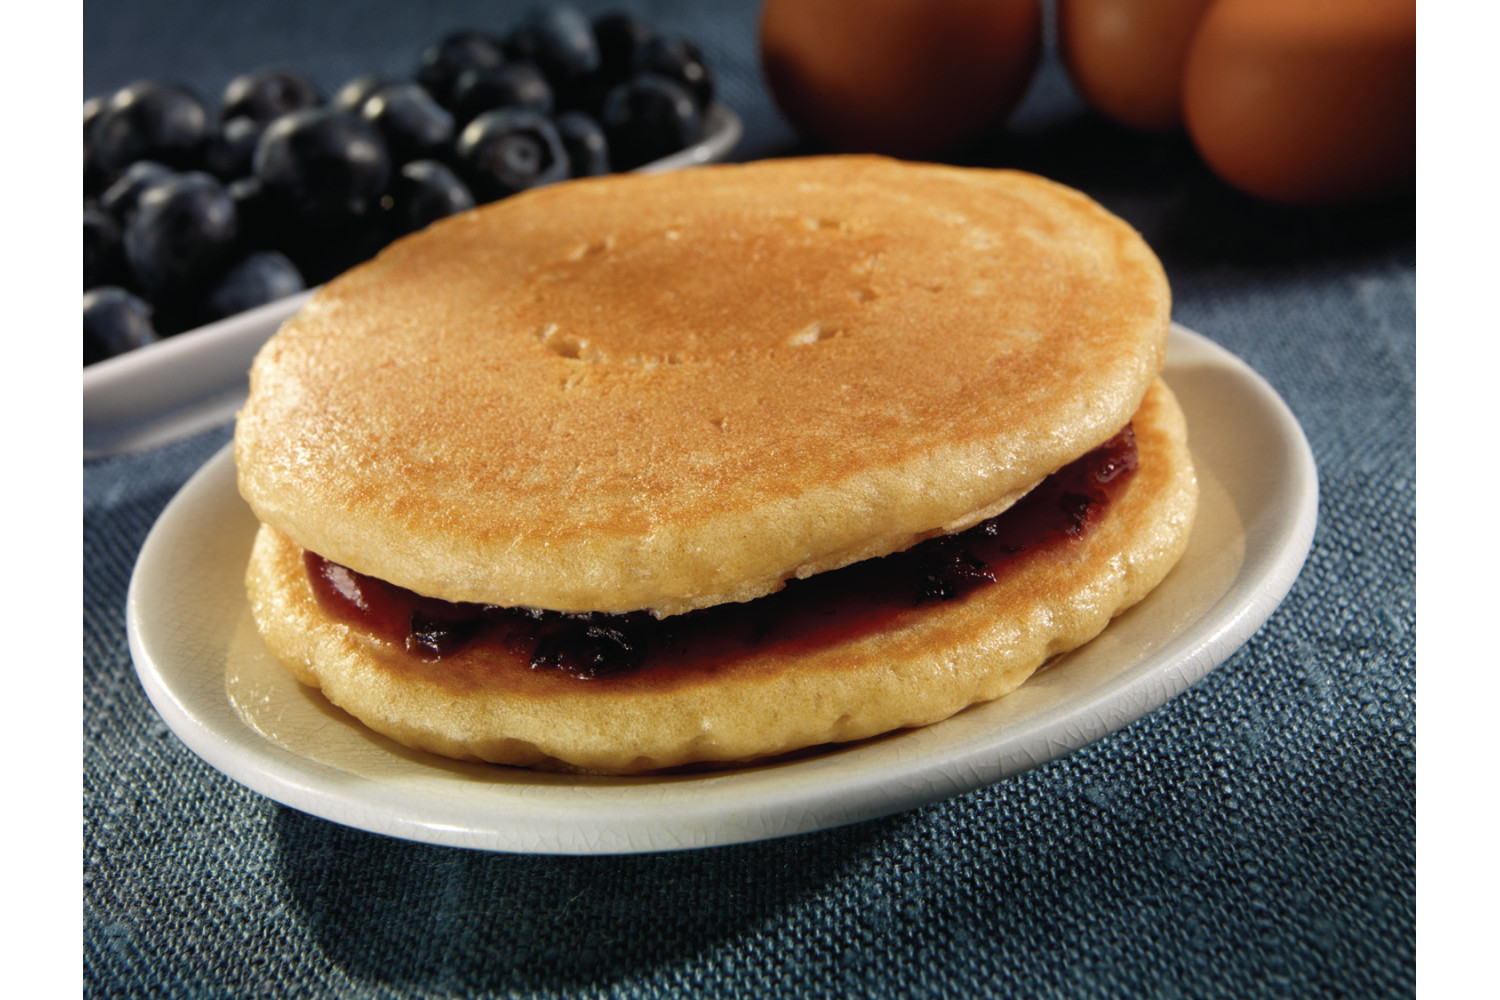 Pancakes with Blueberry Glaze, Whole Grain, 2 pieces, 3 oz